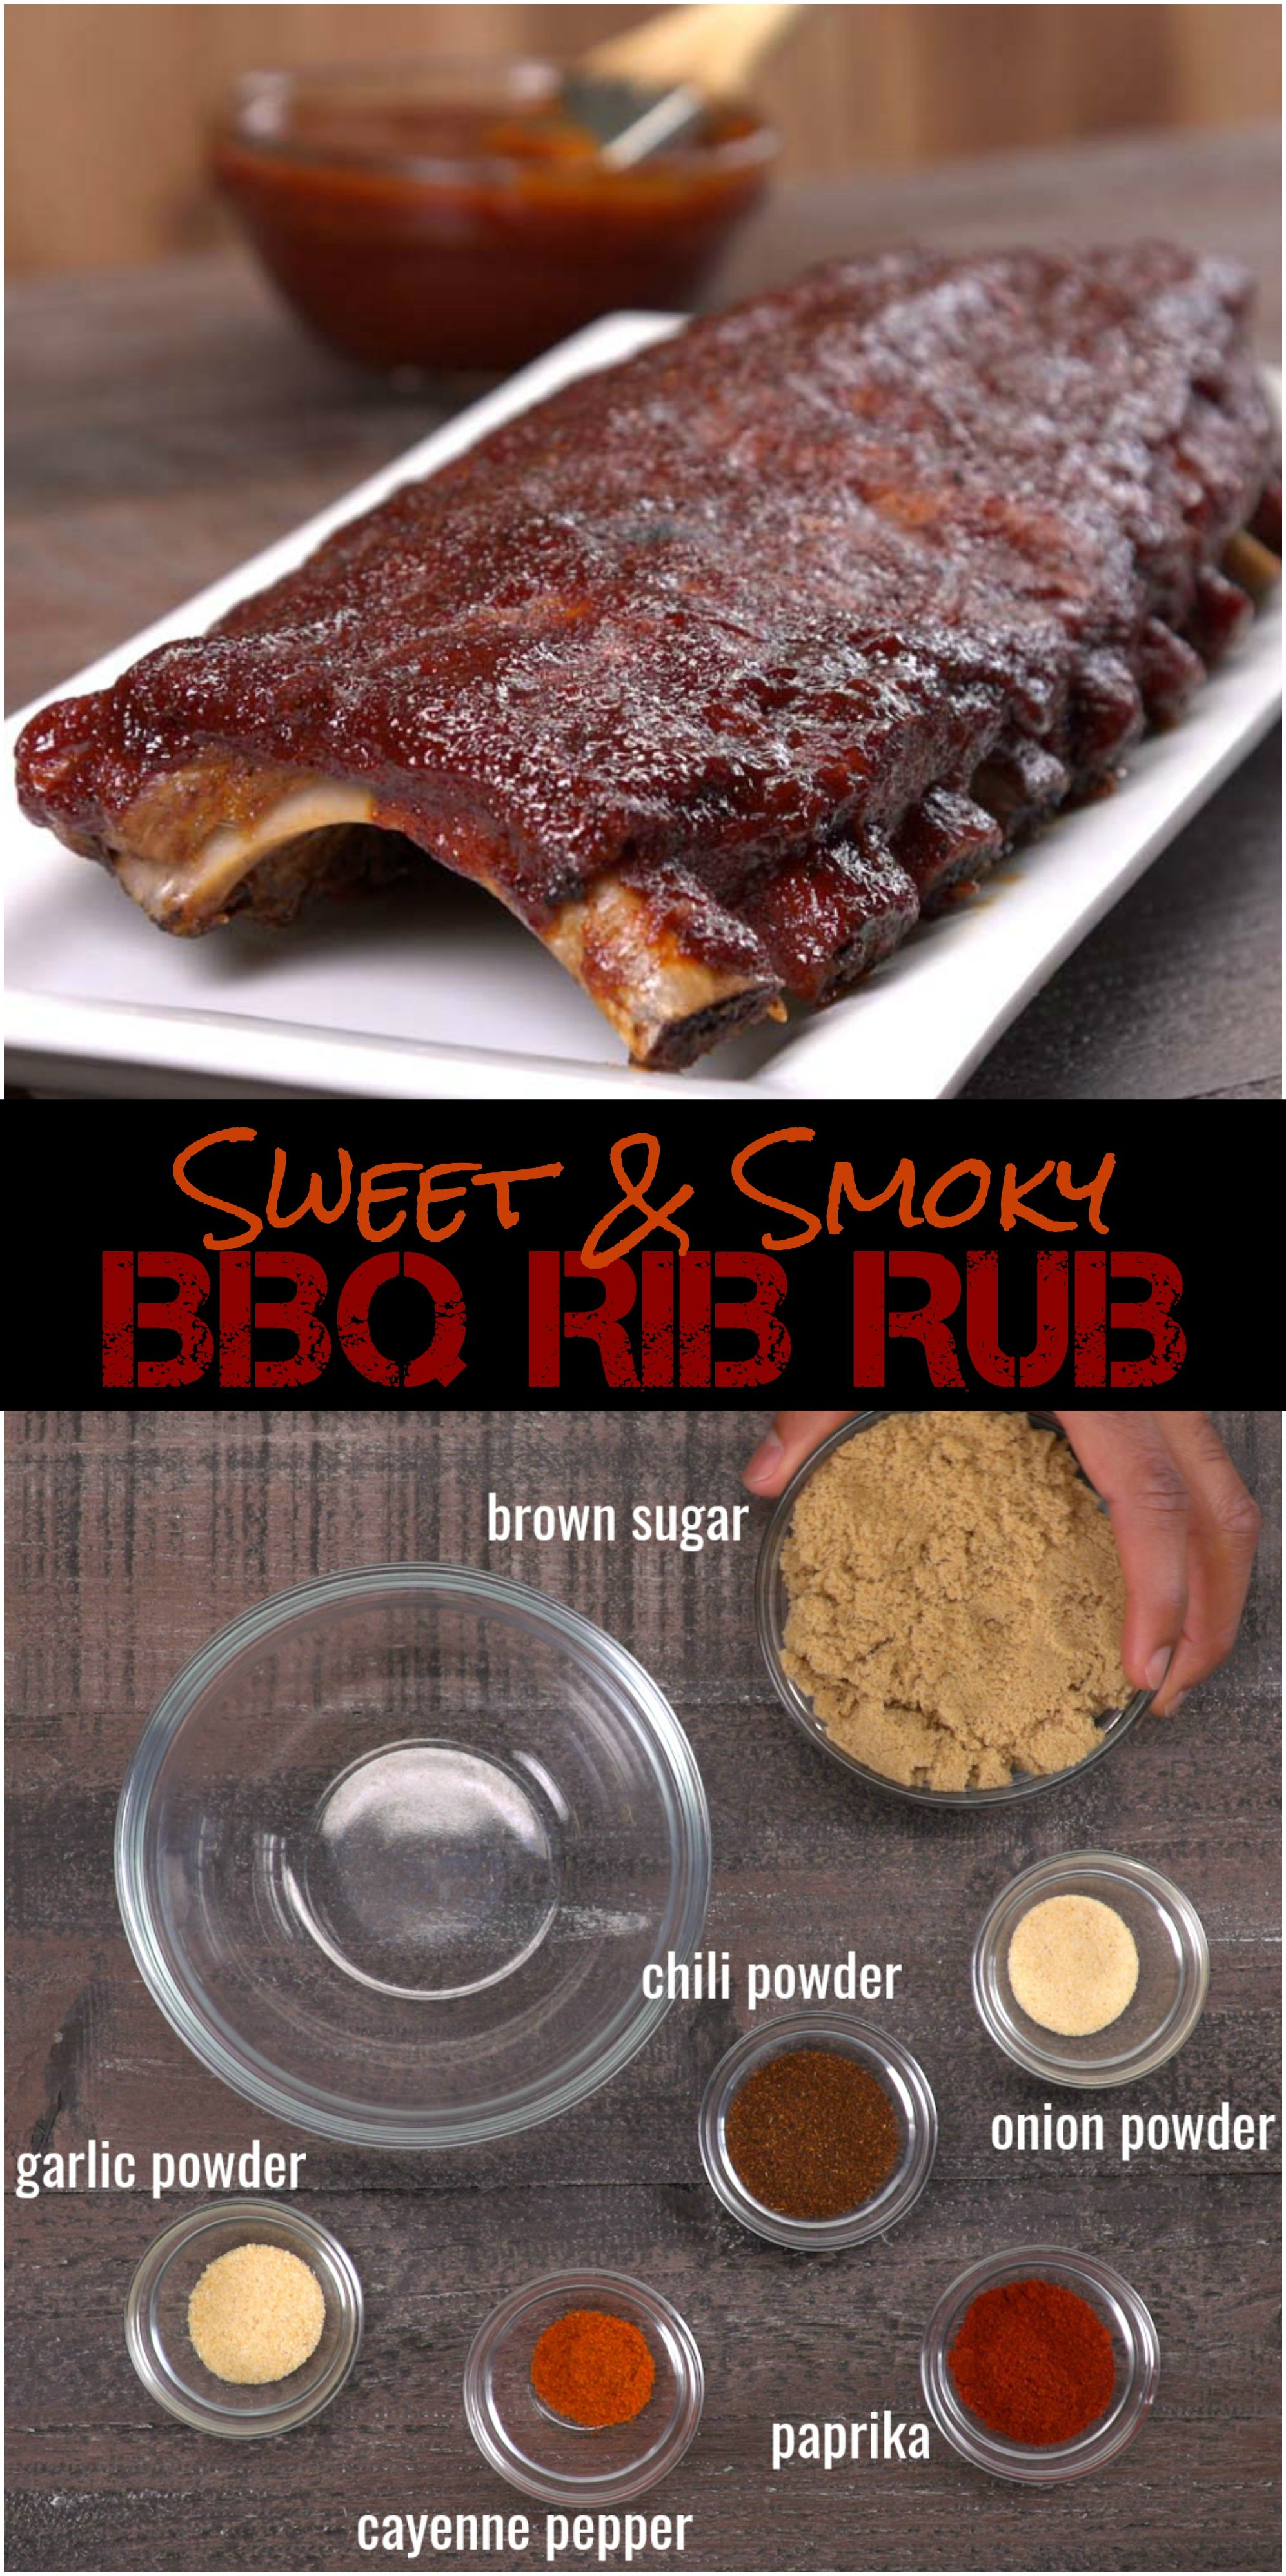 Oven Baked BBQ Ribs with Homemade Rib Rub & BBQ Sauce Massage our 5-ingredient brown sugar rib rub recipe (say that three times fast) into the meat for luscious flavor -- you probably have all of the spices in your cupboard already. And you can use this smoky dry rub for pork ribs of all kinds: baby back ribs, country-style ribs, spare ribs, rib tips.